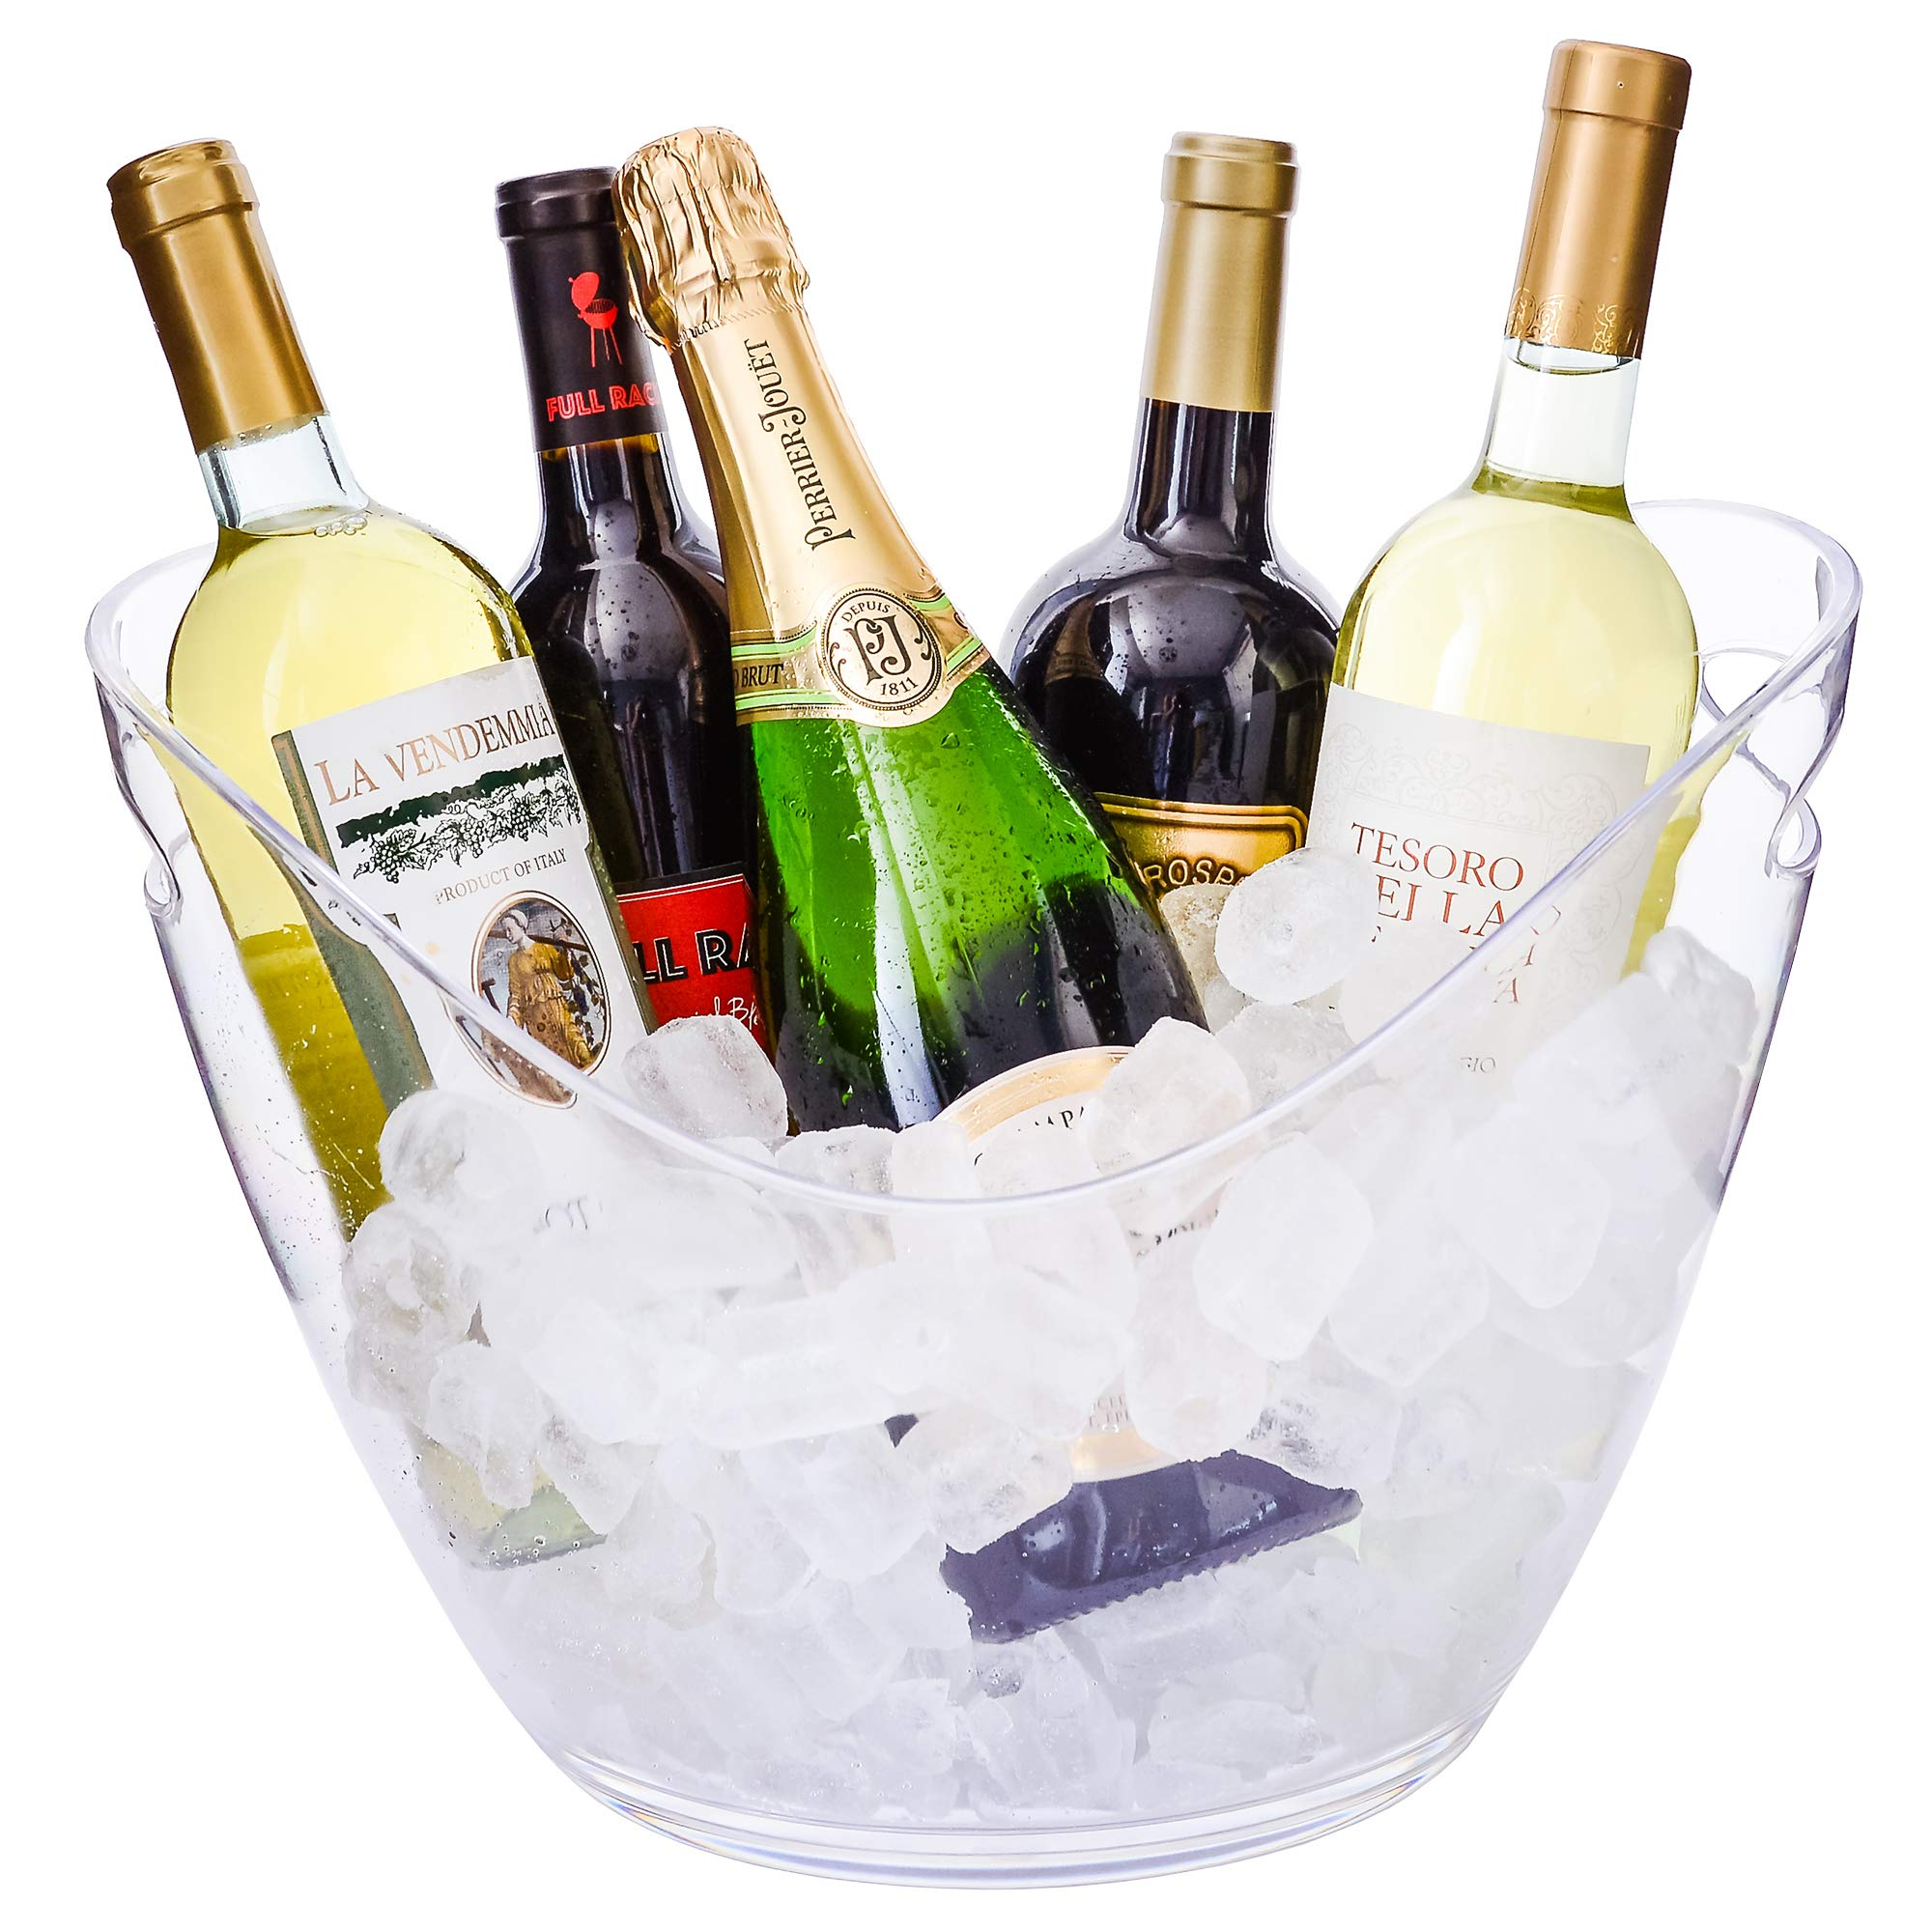 Ice Bucket Clear Acrylic 8 Liter Plastic Tub For Drinks and Parties, Food Grade, Holds 5 Full-Sized Bottles and Ice by SKOL Tribe